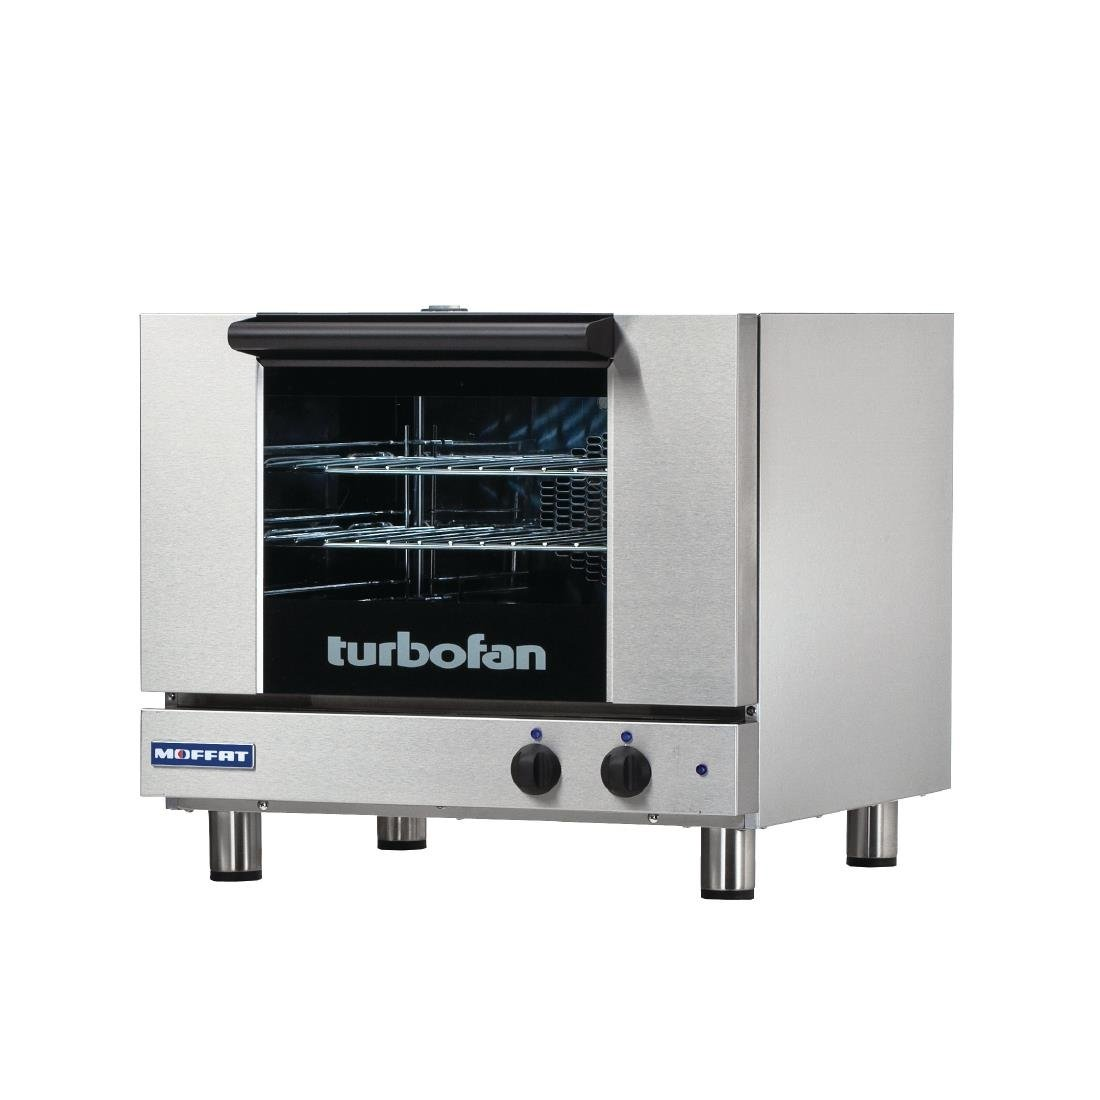 Turbofan by moffat convection oven e22m3 dn420 buy online at nisbets moffat electric convection oven e22m3 direct nvjuhfo Image collections